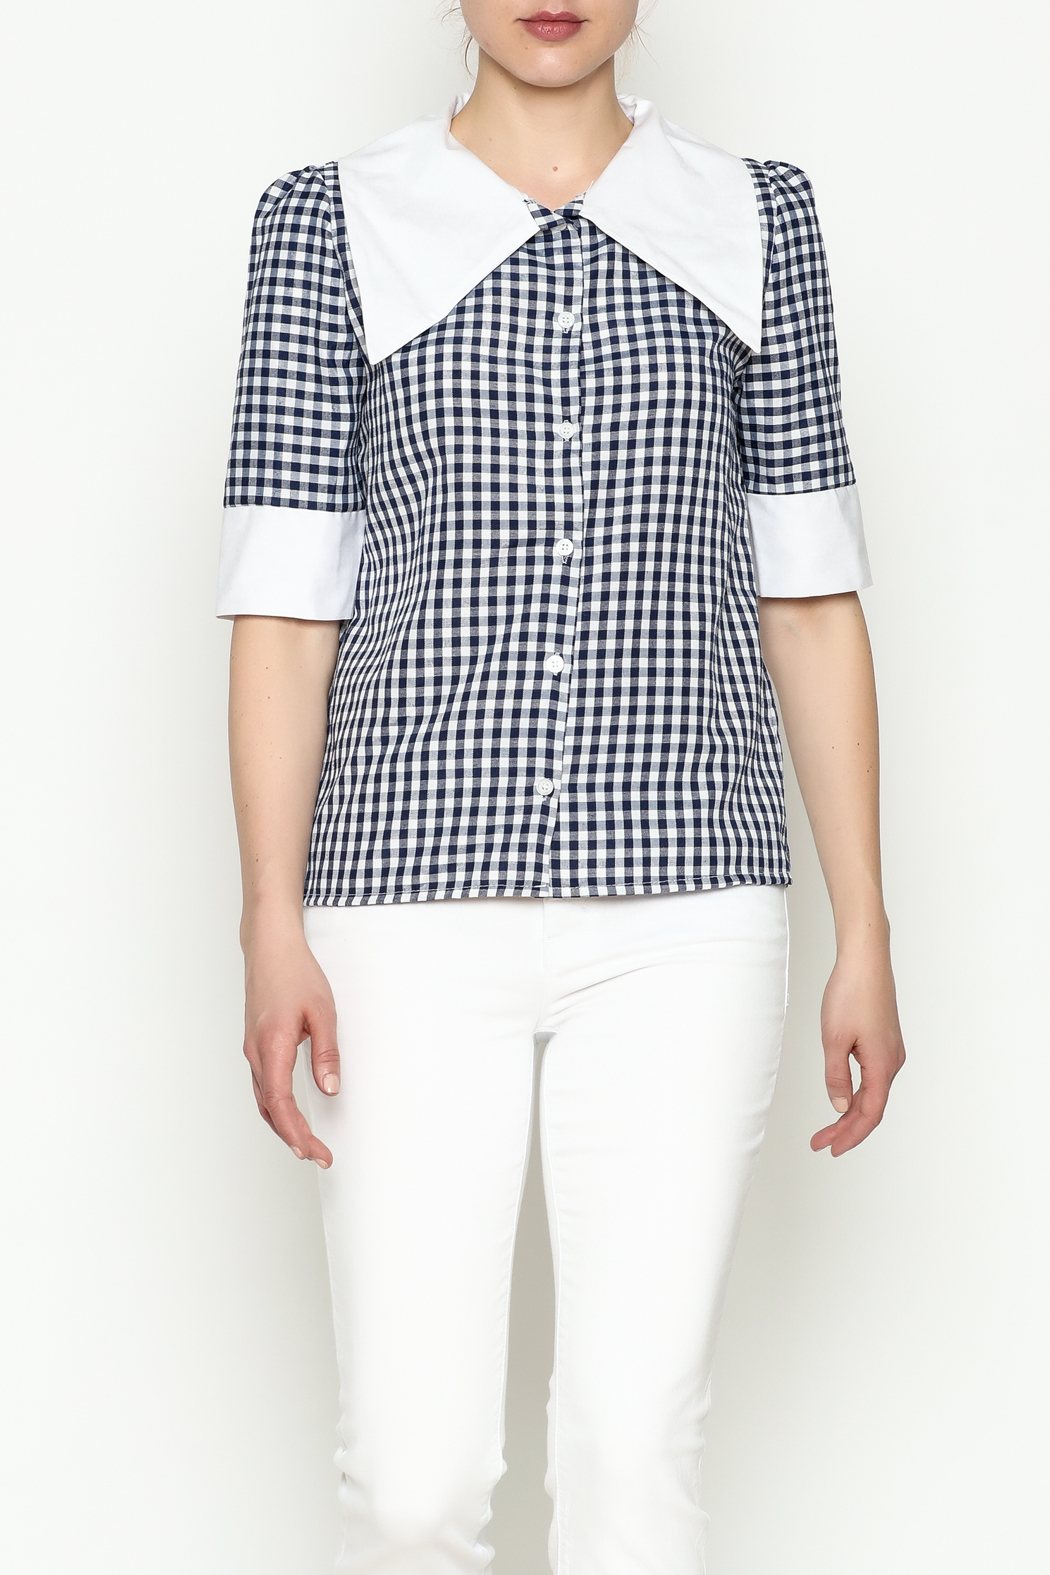 THINK CLOSET Sailor Top - Main Image